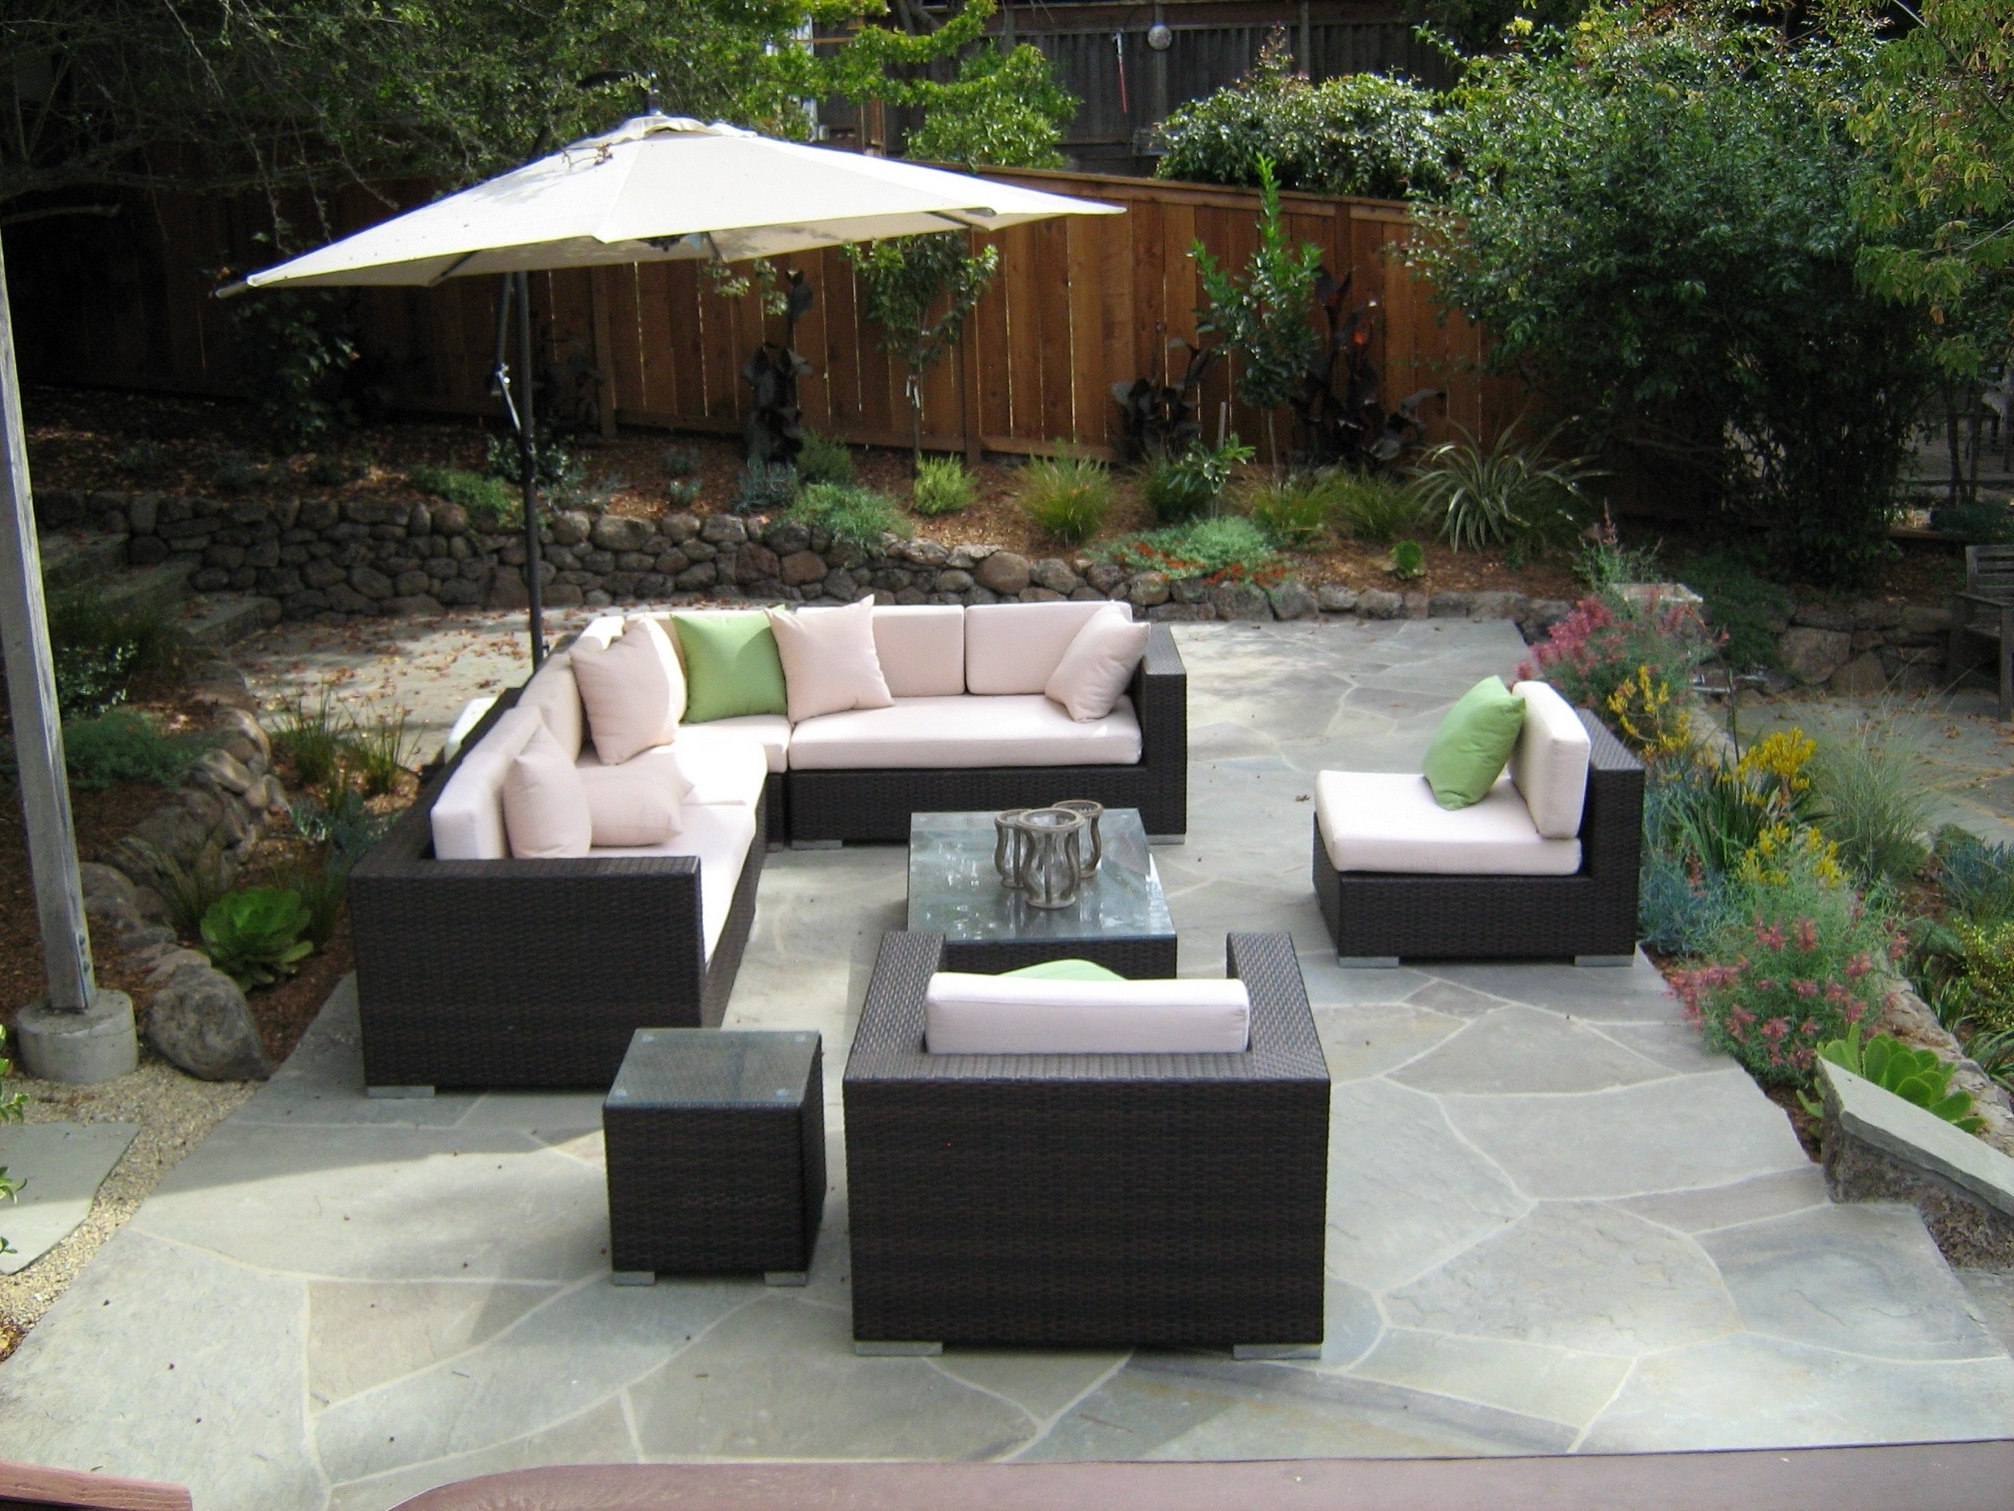 Patio : Small Patio Furniture Awesome Chair Fabulous Aluminum Patio Within Most Recently Released Patio Conversation Sets With Umbrella (View 11 of 20)